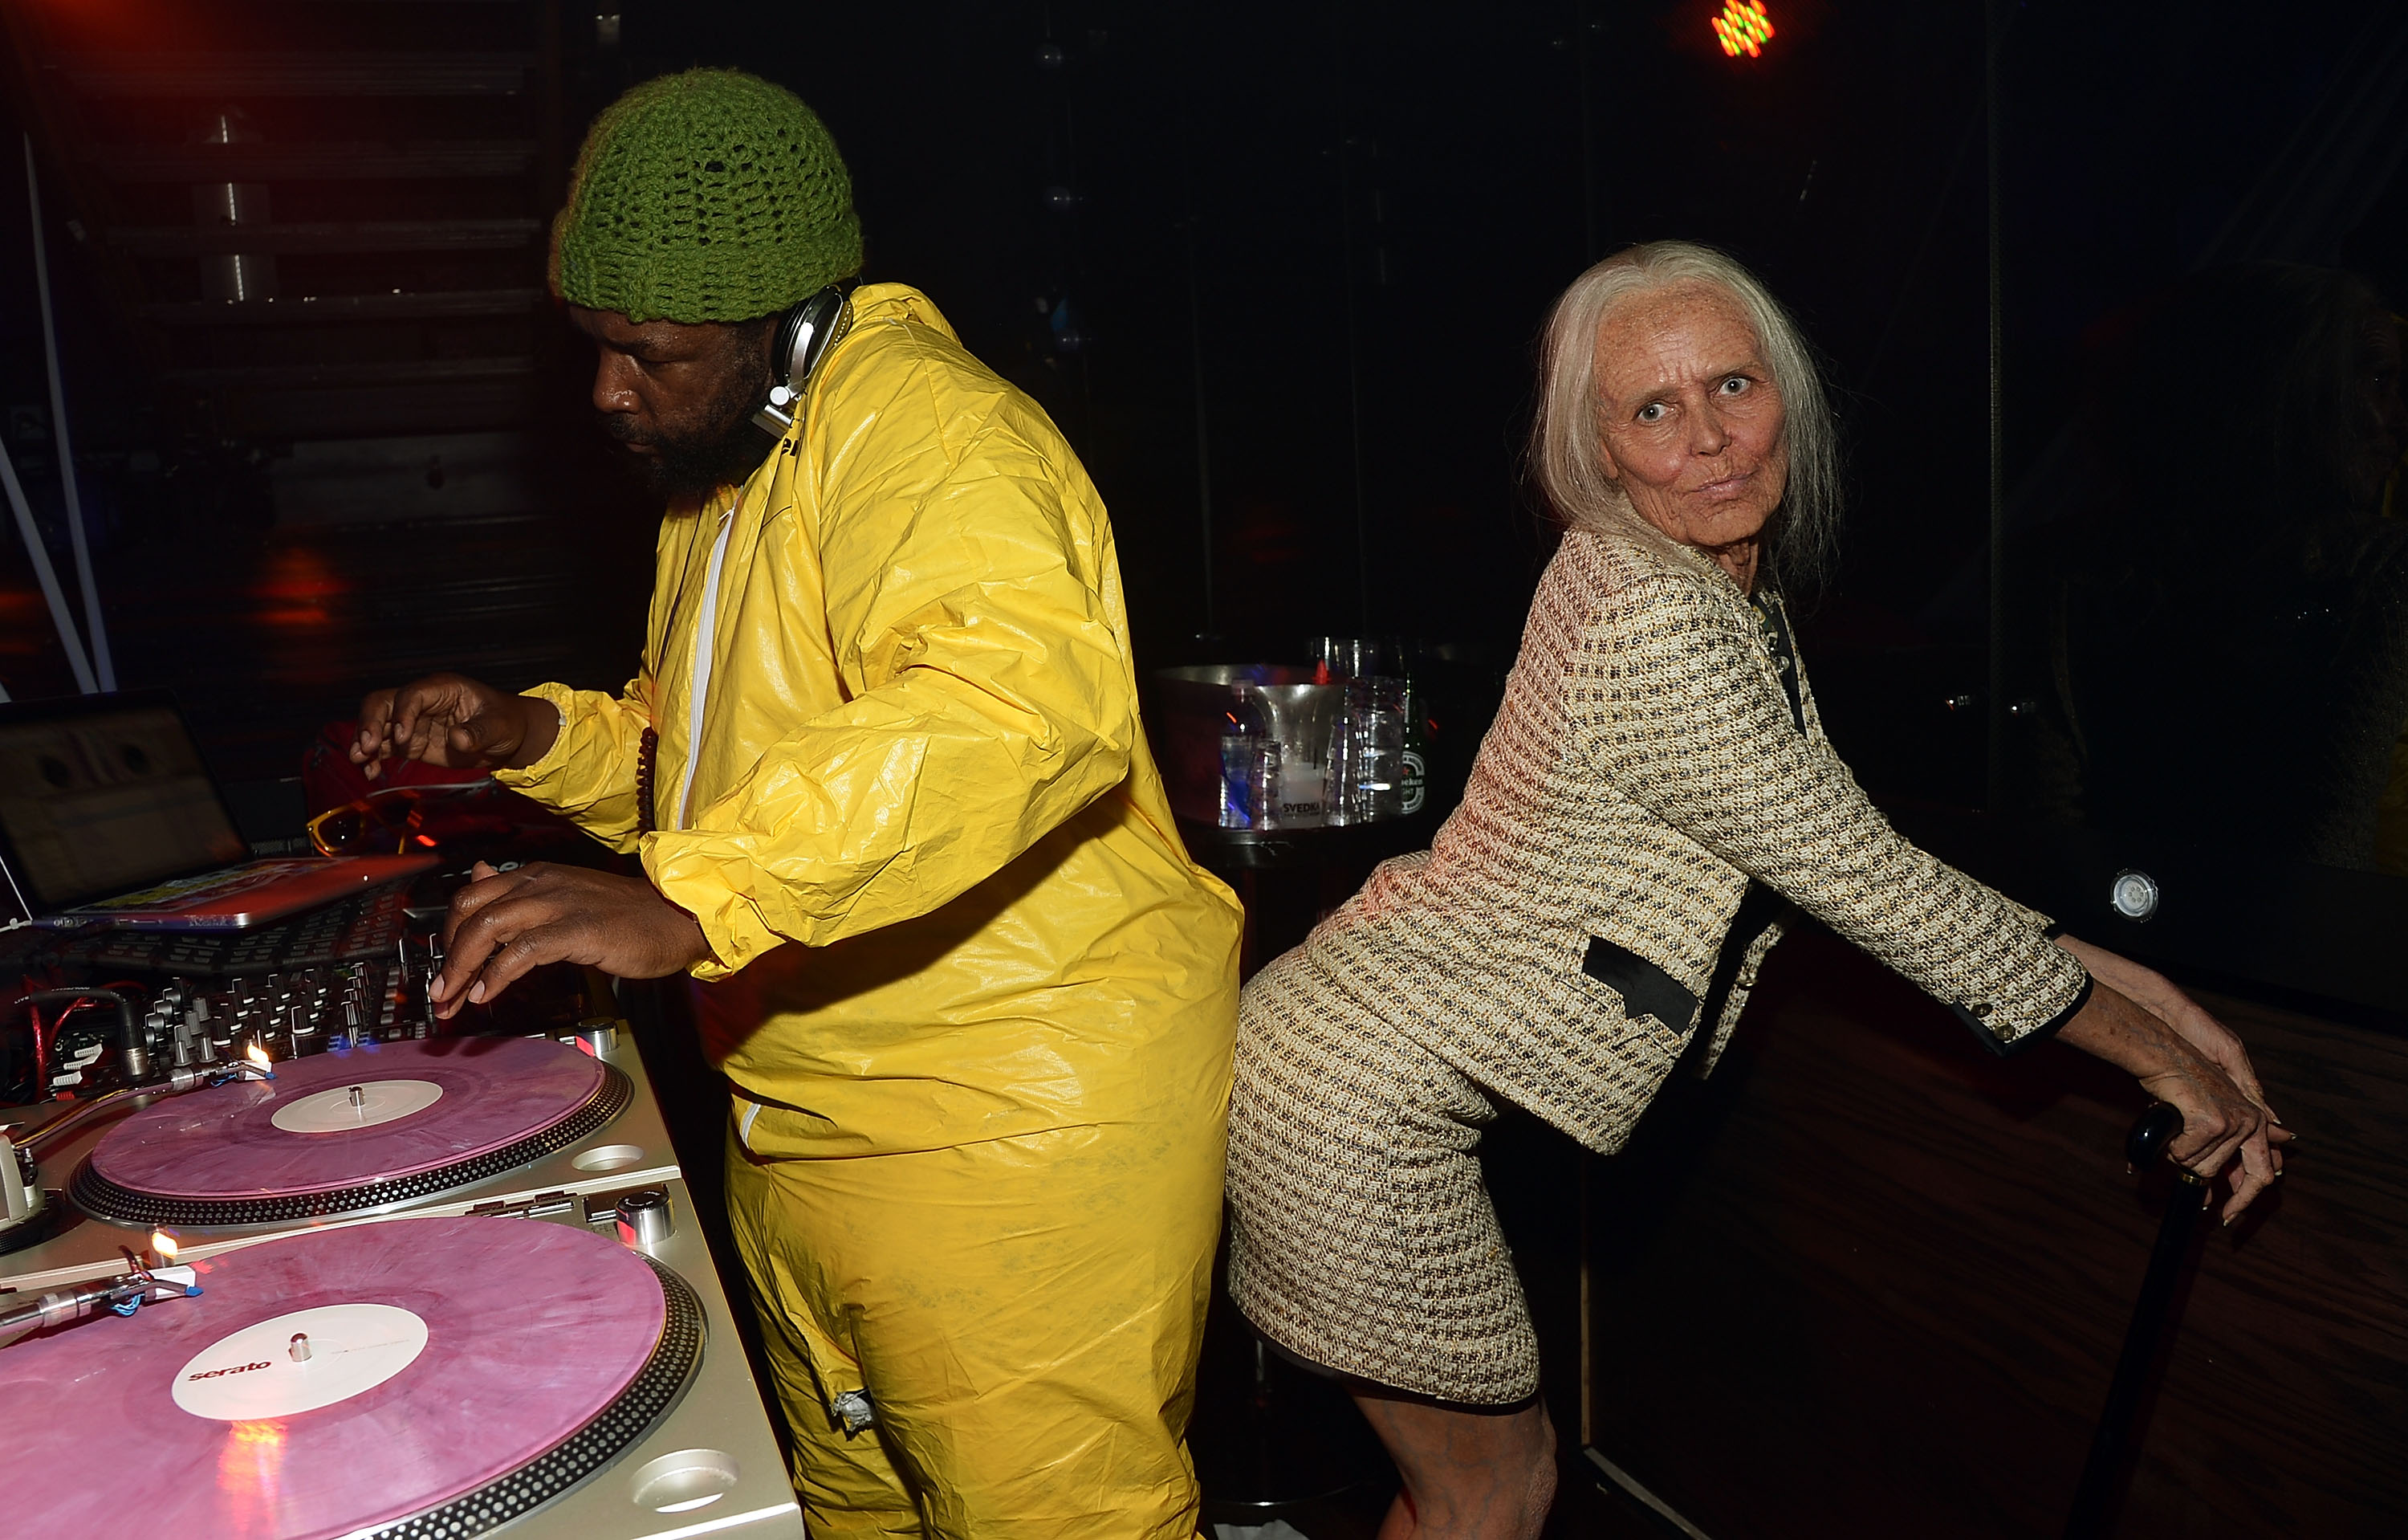 Questlove and Heidi Klum :: Mike Coppola/Getty Images